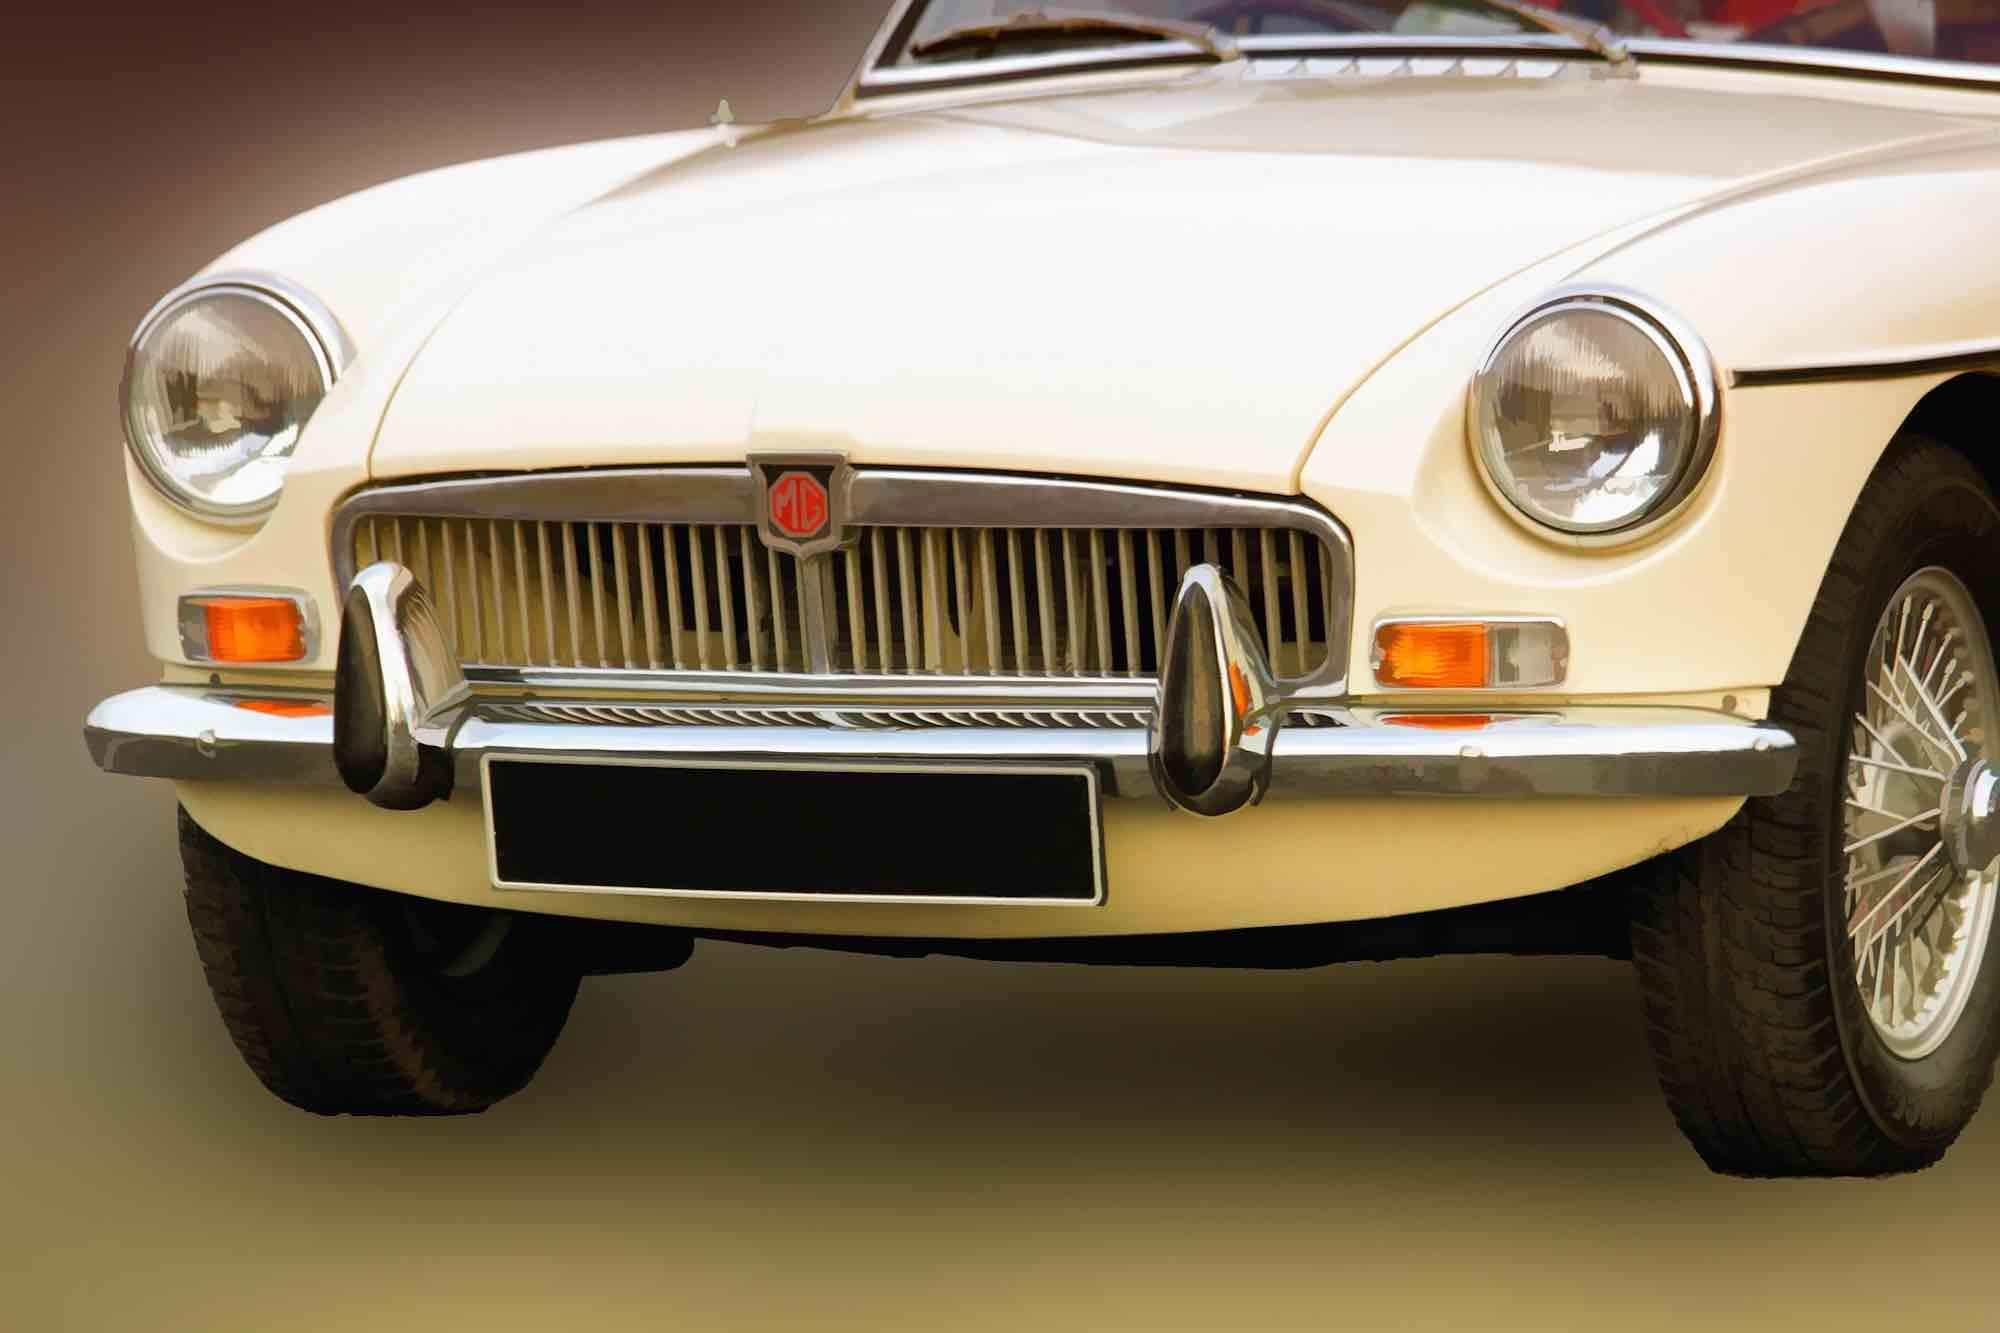 How to Safely Move Your Classic Car Cross Country